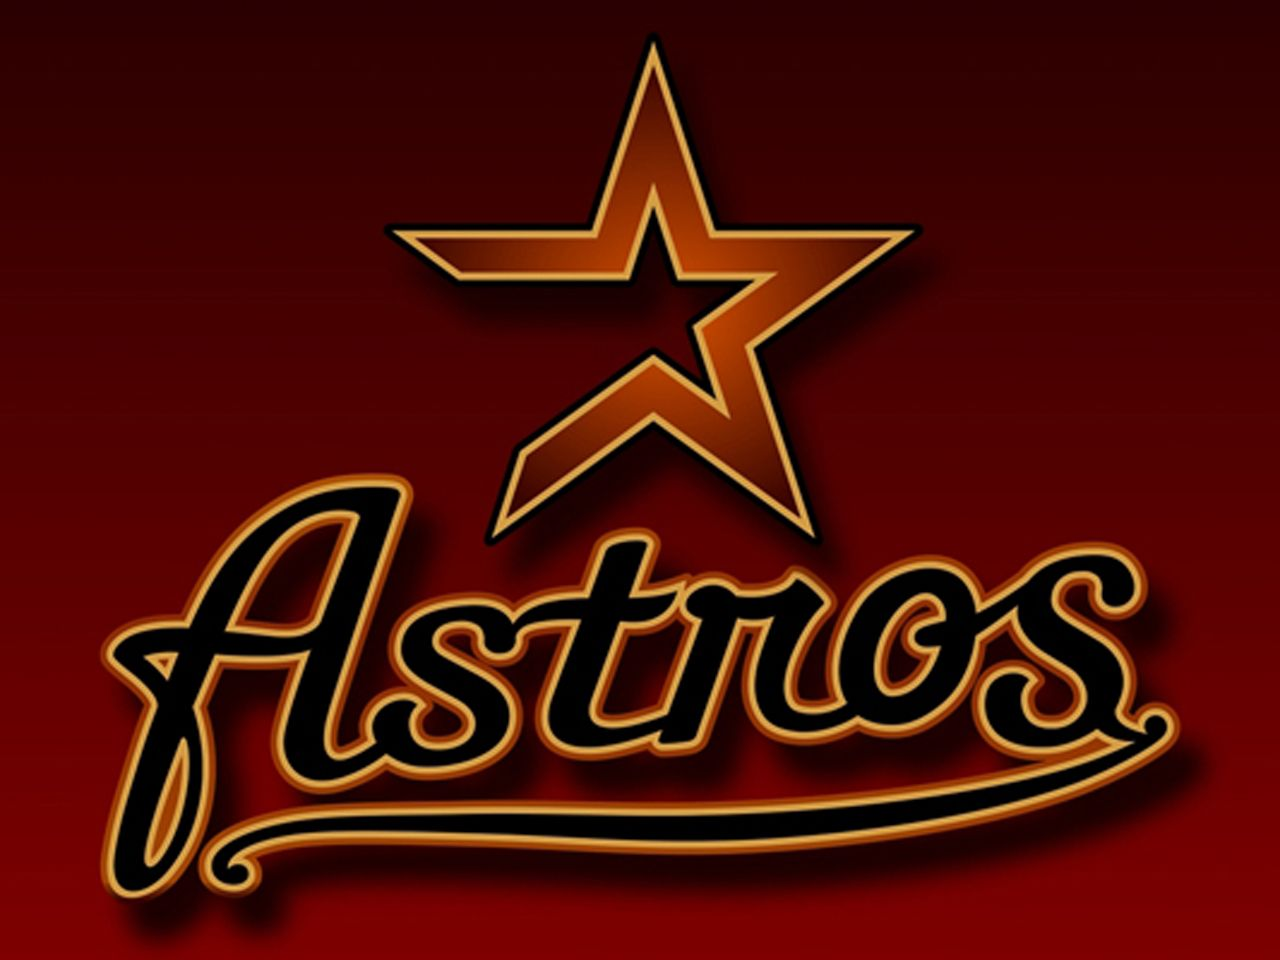 http://2.bp.blogspot.com/-51kuKfVpUOA/TkcFrEQMejI/AAAAAAAAAU8/VxtLoj12i7g/s1600/houston_astros_logo_with_name_wallpaper_-_1280x960.jpg